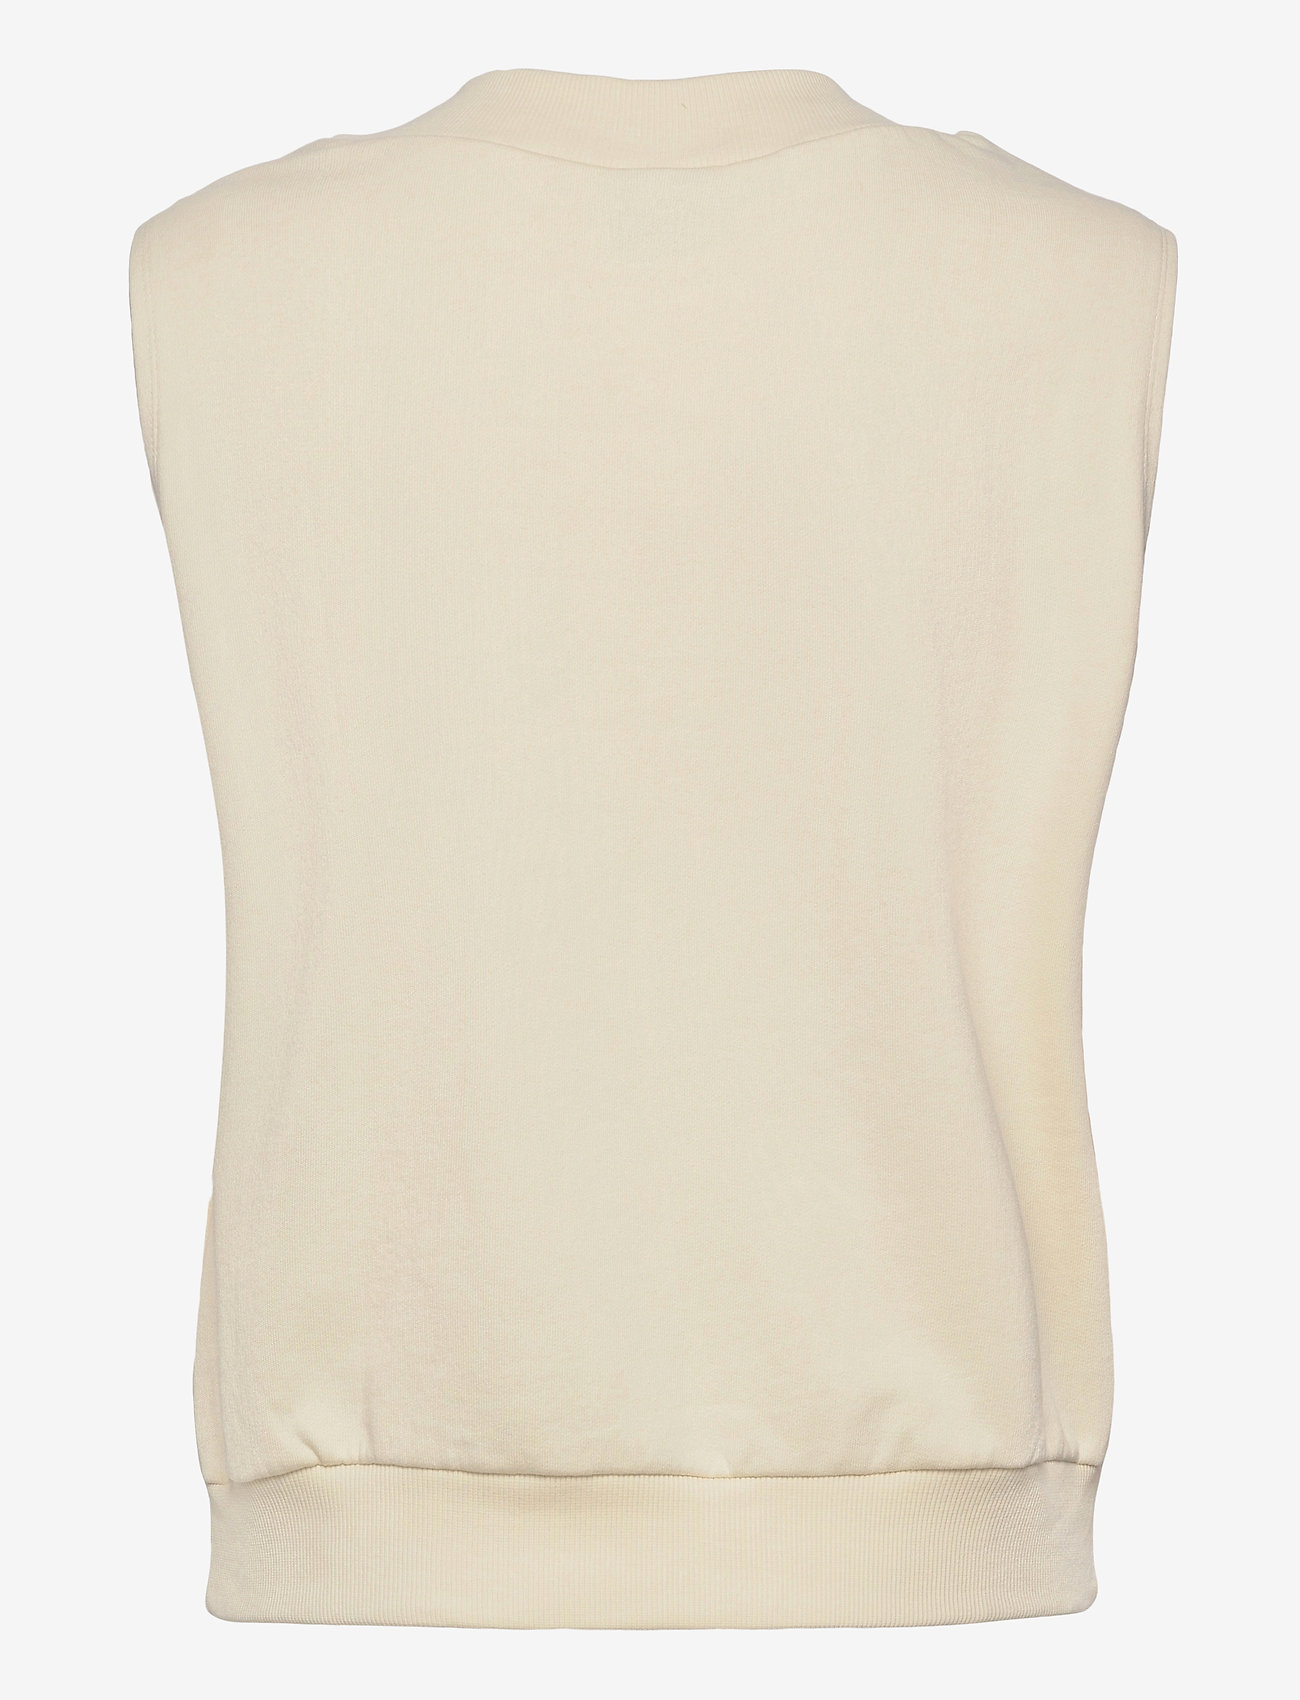 Gina Tricot - Love vest - knitted vests - cloud cream (1601) - 1